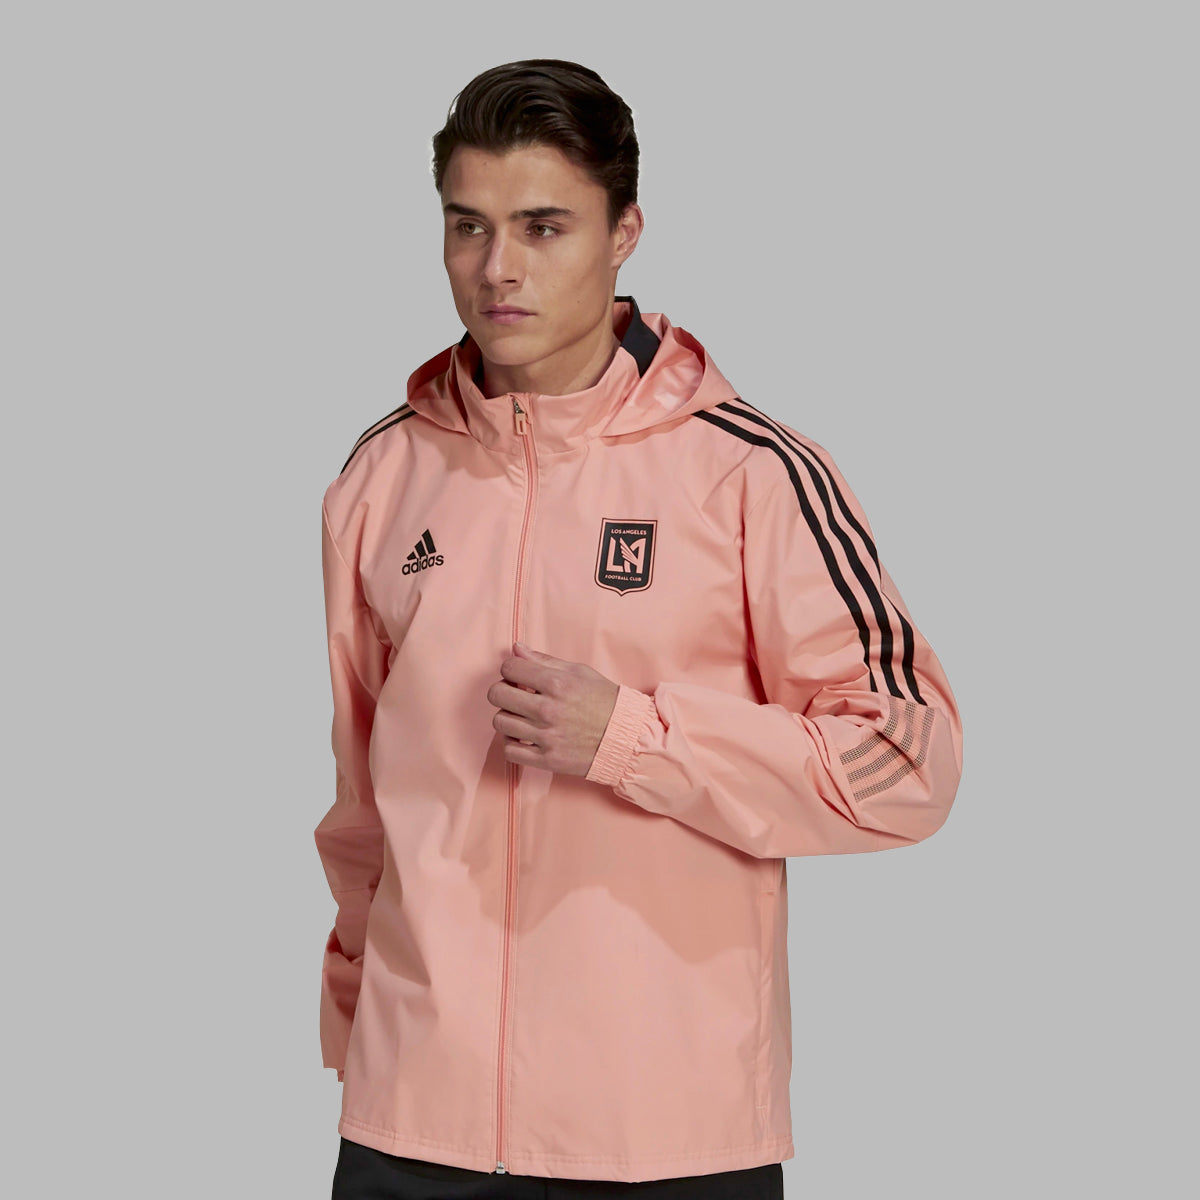 adidas drop LAFC pink collection, Available now